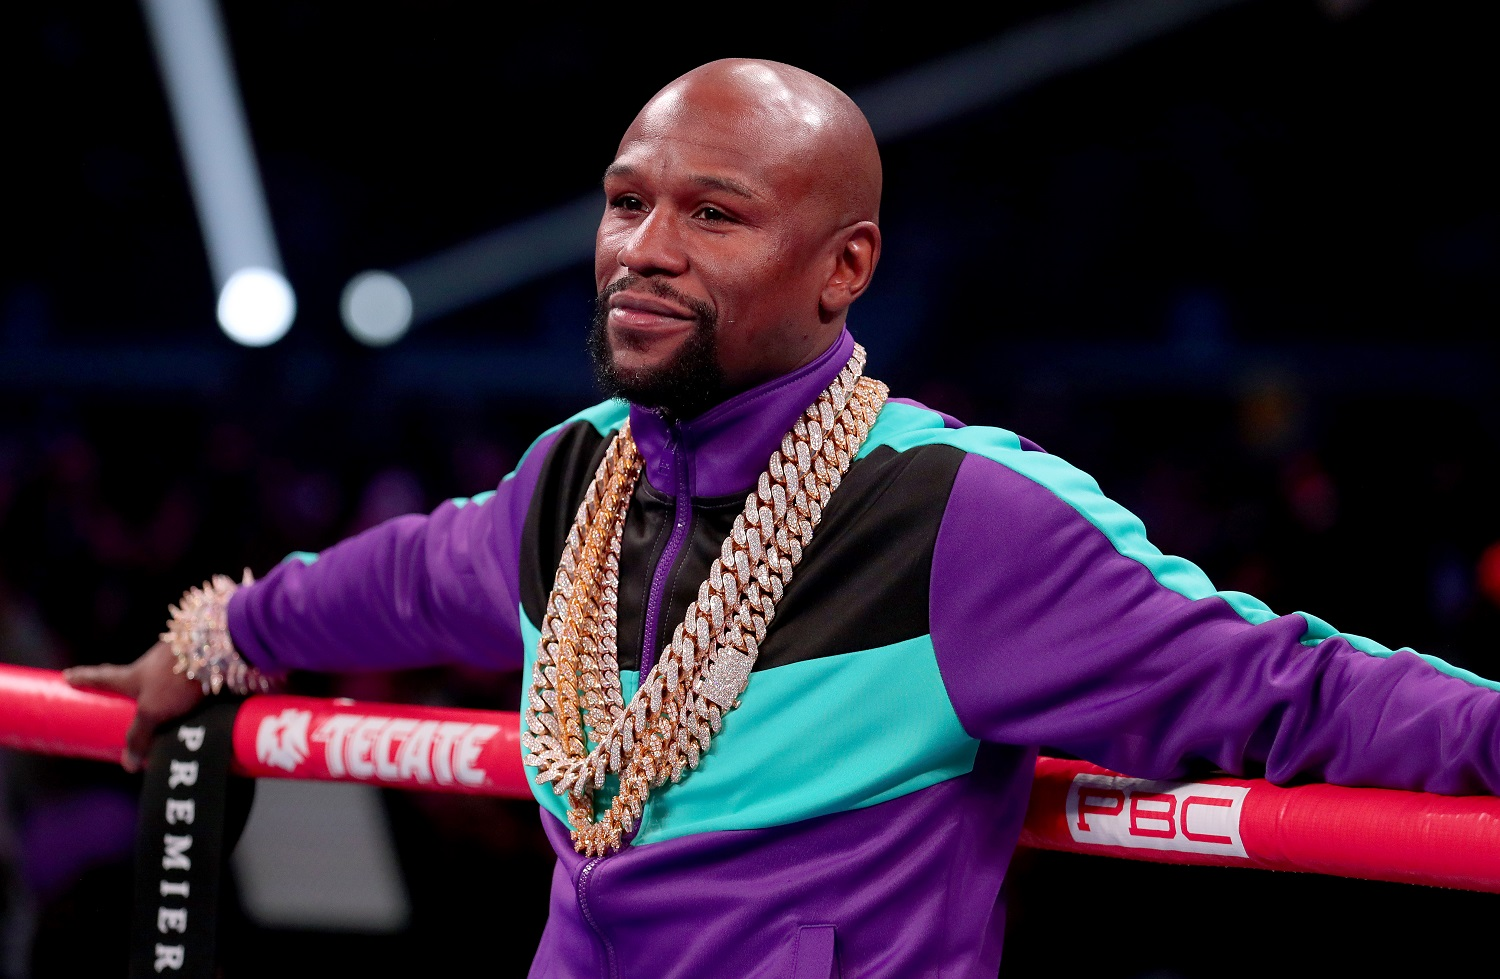 Floyd Mayweather Announces Comeback 'Fight' While Discussing Mike Tyson vs. Roy Jones Jr.